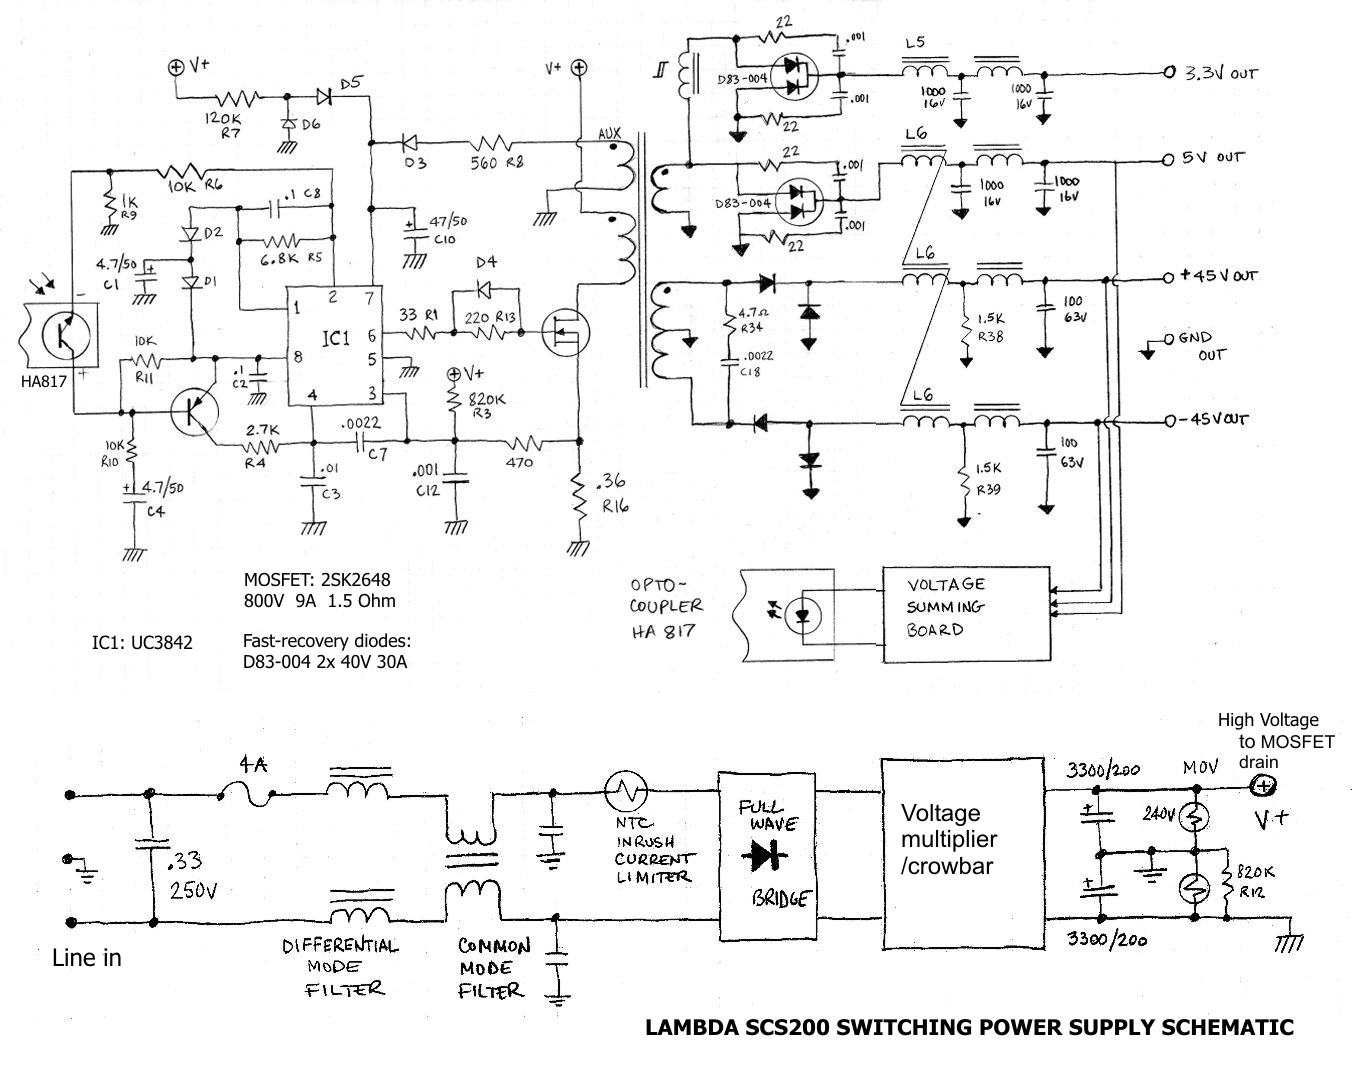 Kawasaki Circuit Breaker Not Lossing Wiring Diagram Ignition Coil Driver 120 Volt Free Different Types Of Breakers